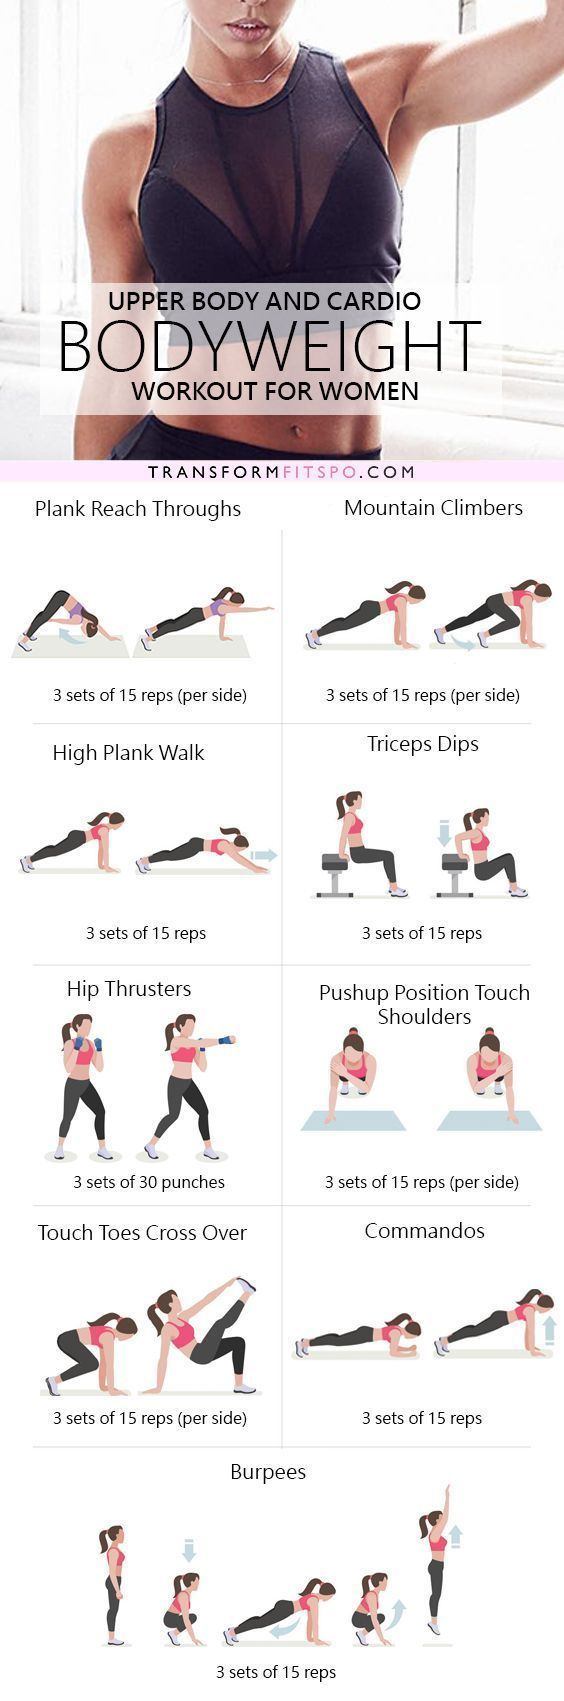 A killer 30 minute workout designed to target your upper body, giving you toned arms and a sexy back!